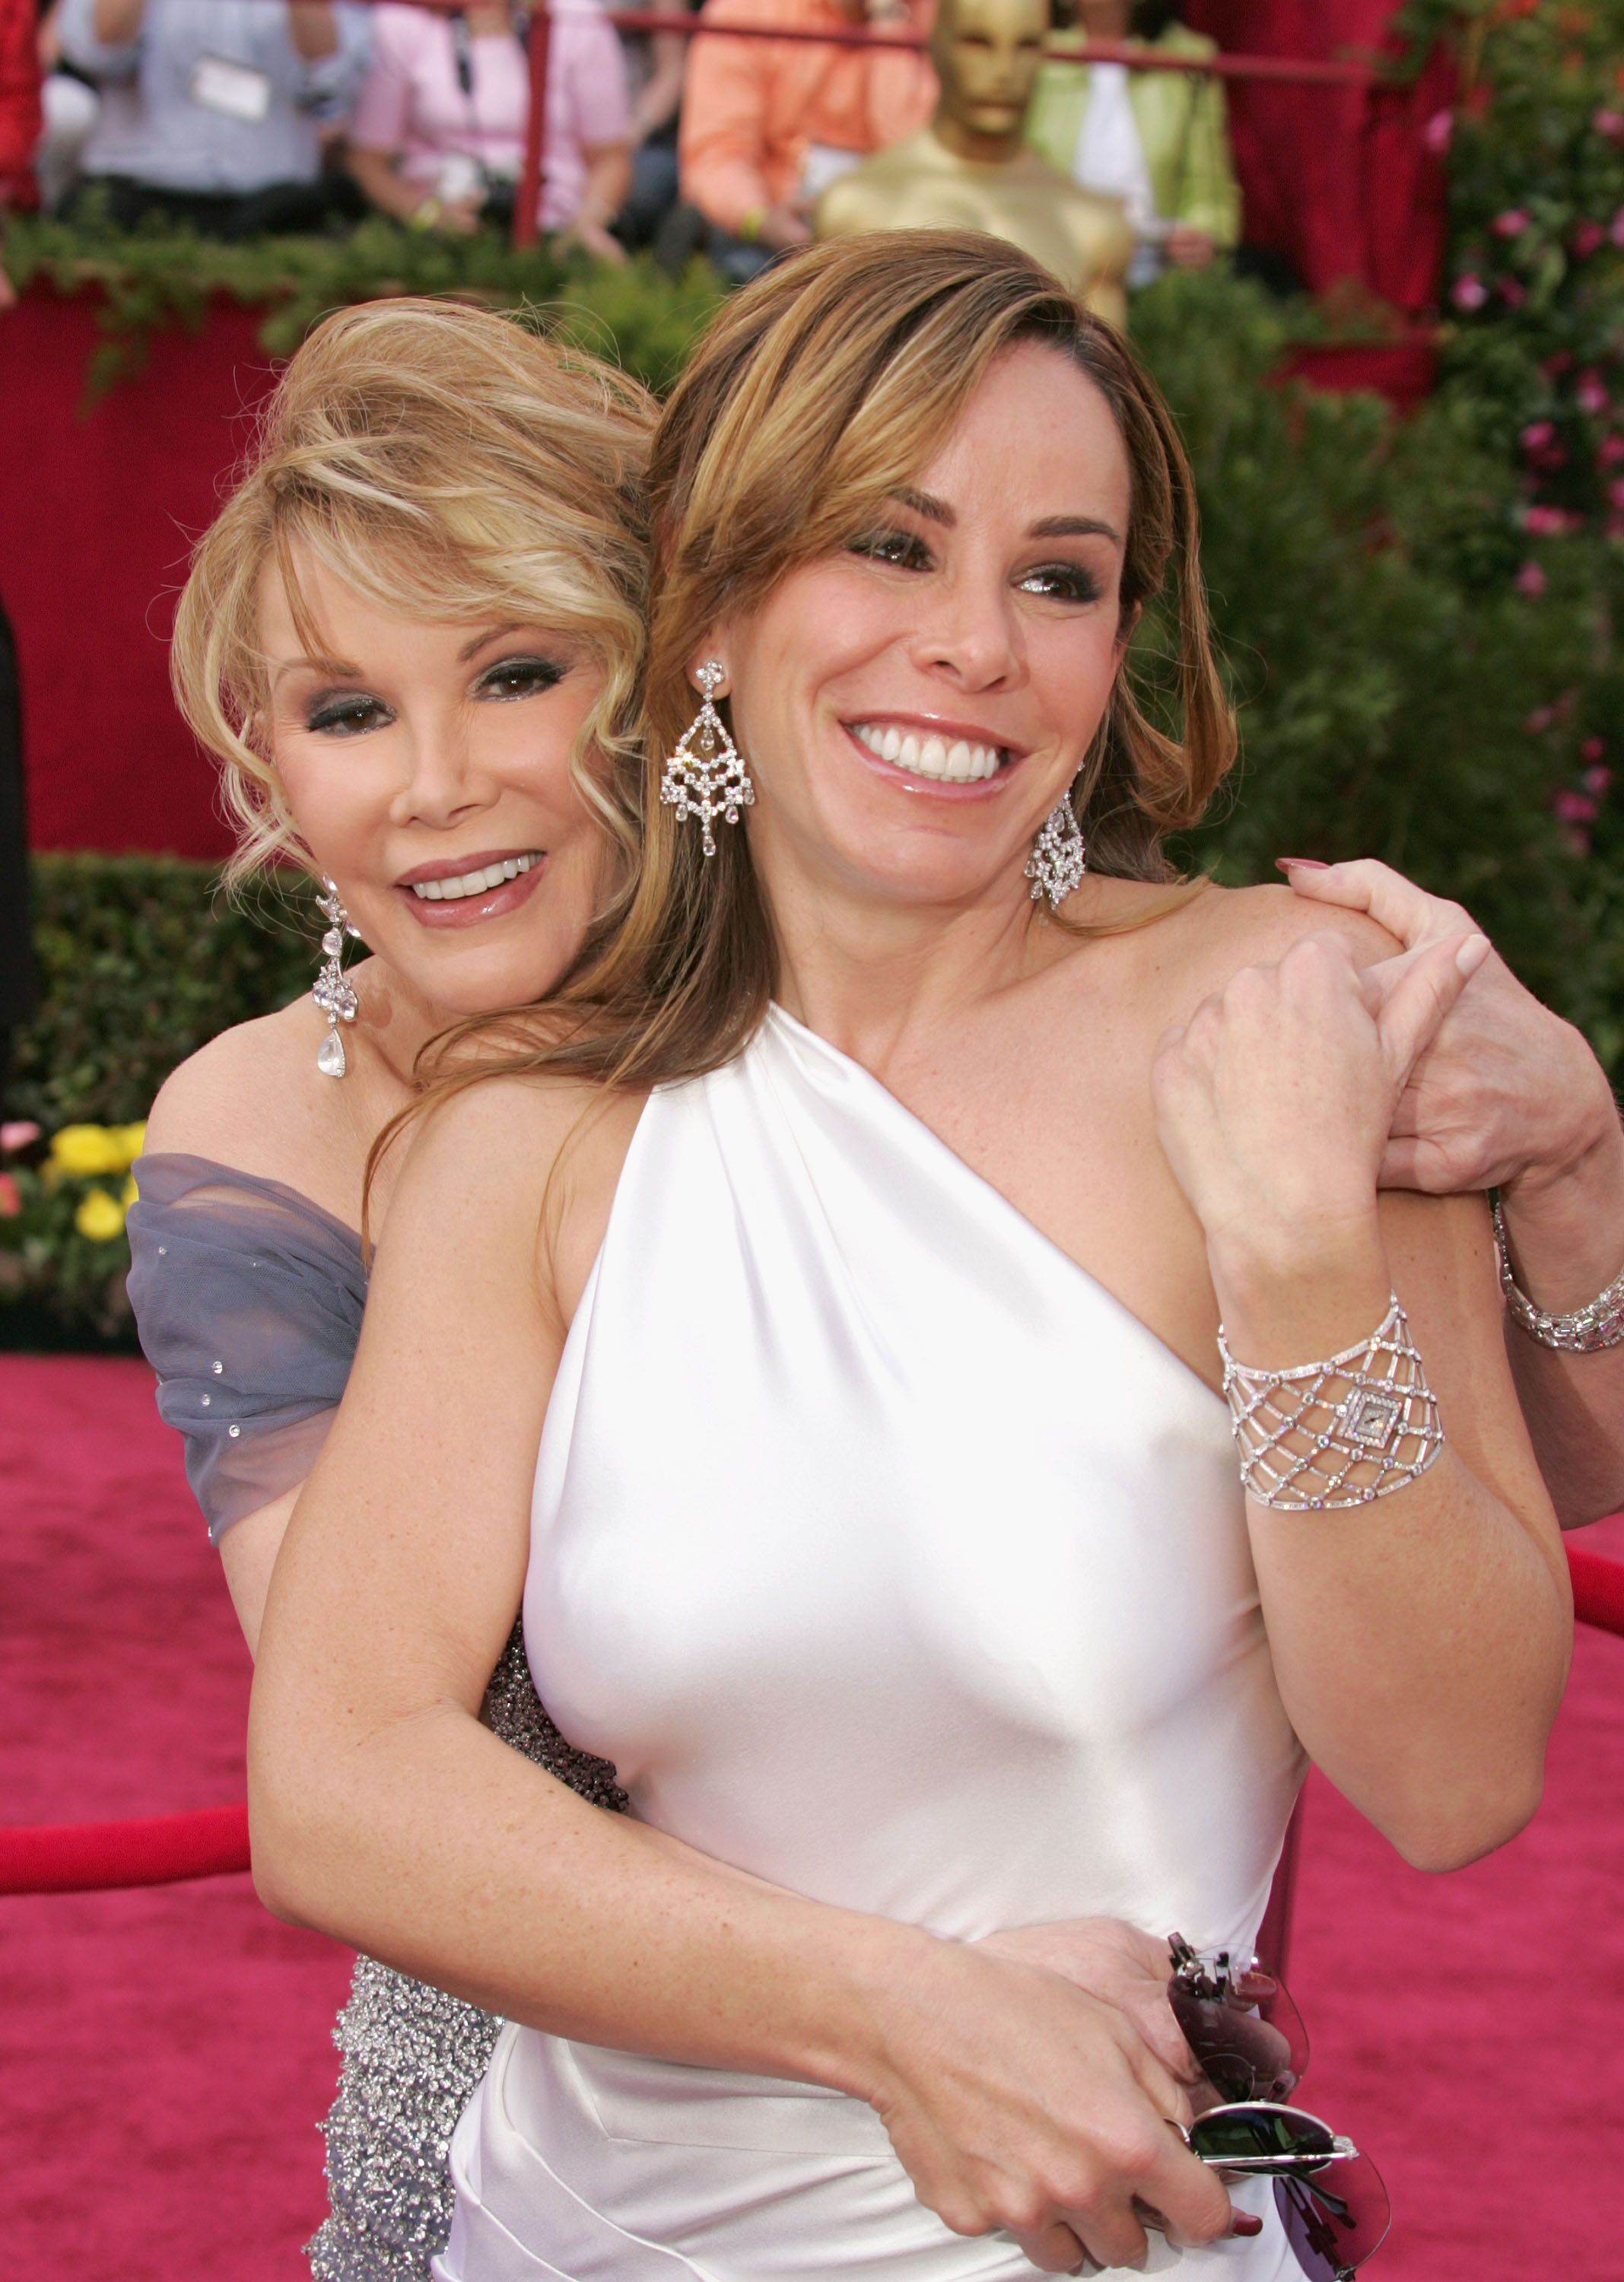 The late Joan Rivers and Melissa Rivers at to the 77th Annual Academy Awards at the Kodak Theater on February 27, 2005 | Photo: Getty Images